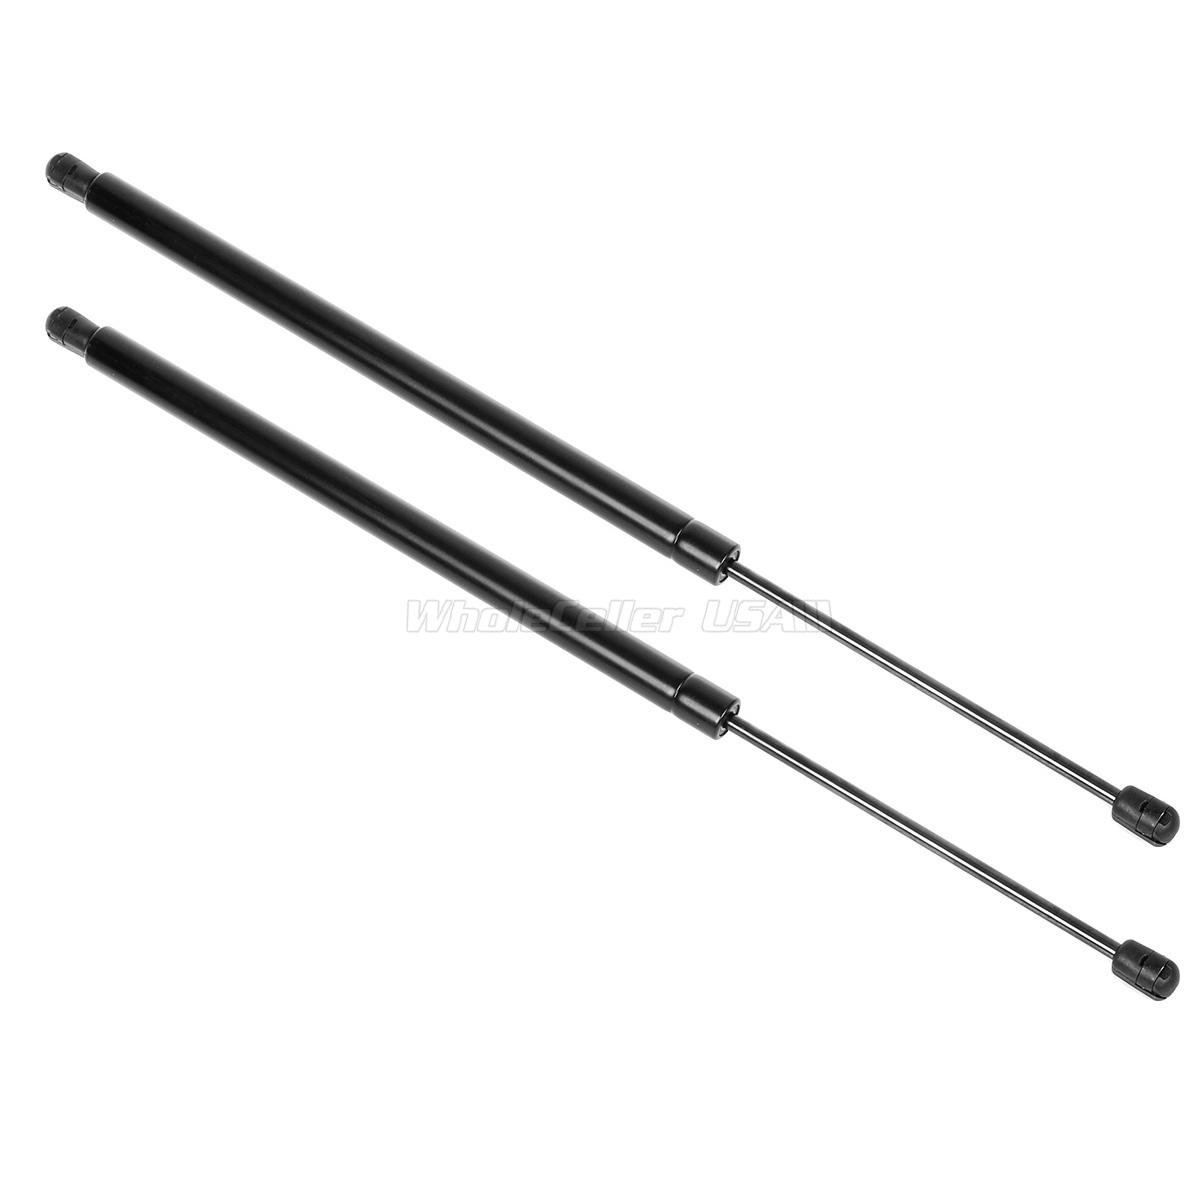 Qty 2 Rear Hatch Gas Charged Lift Support Struts For